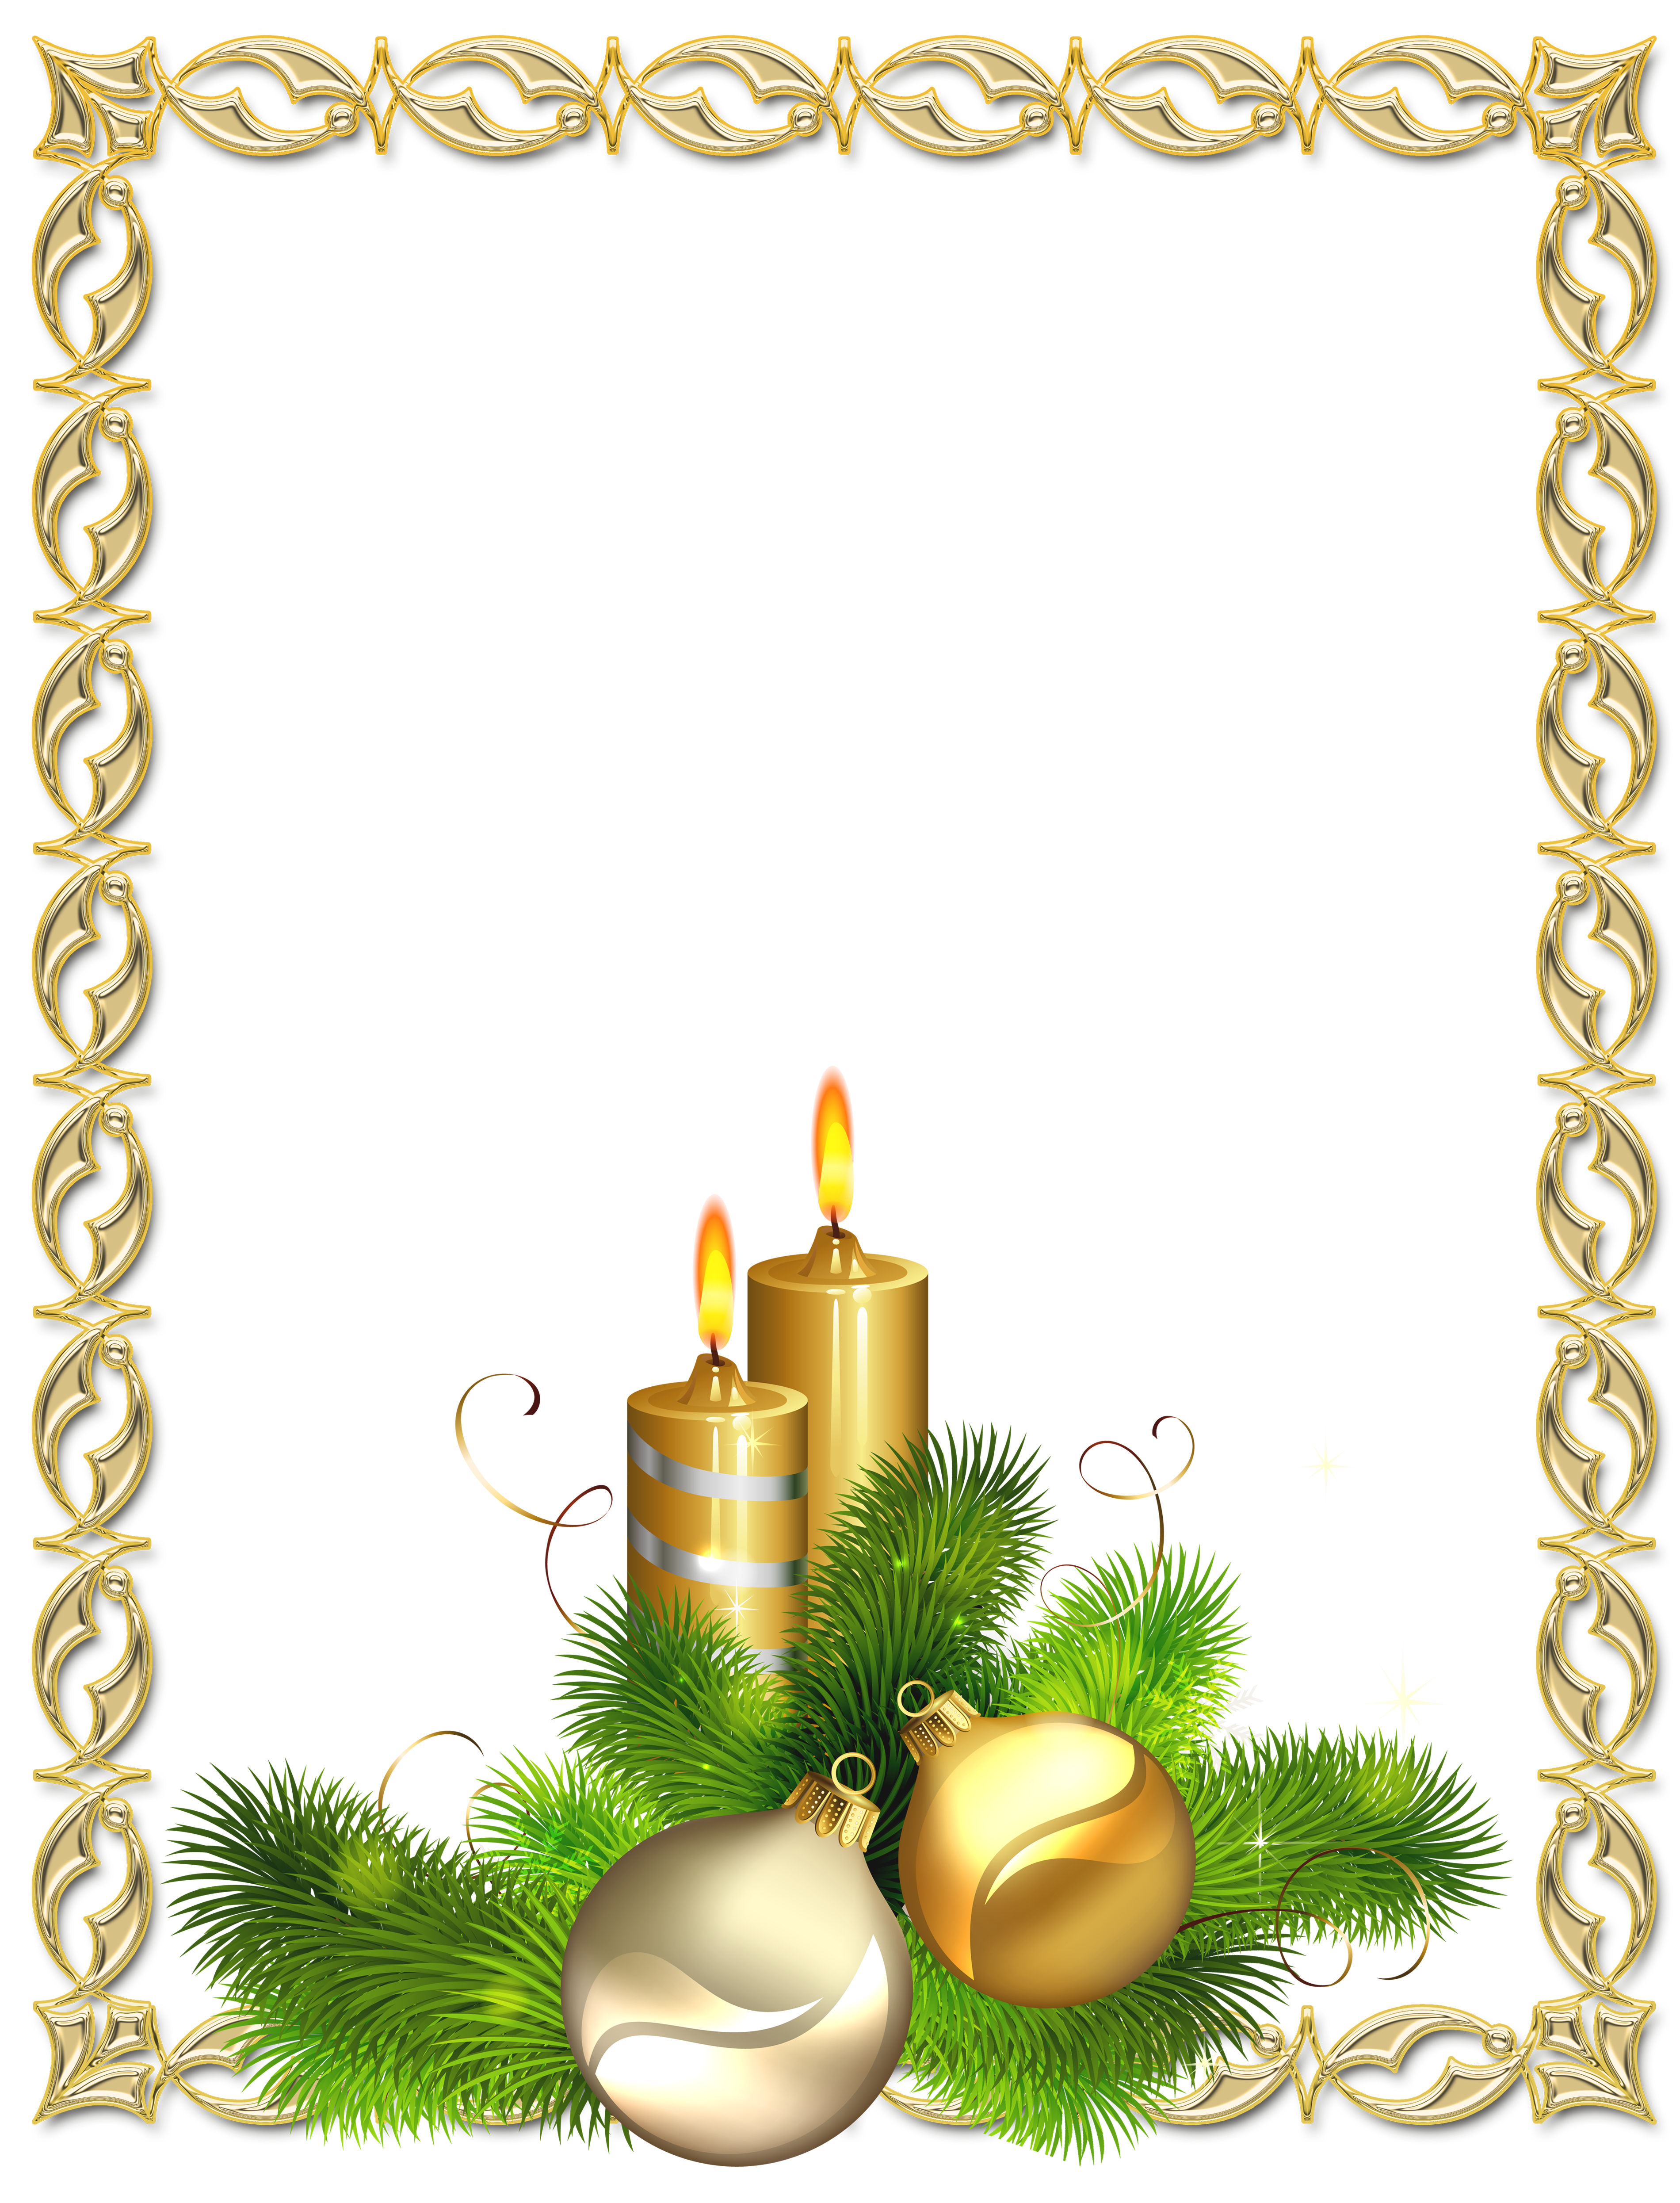 Ball clipart frame. Large transparent gold christmas